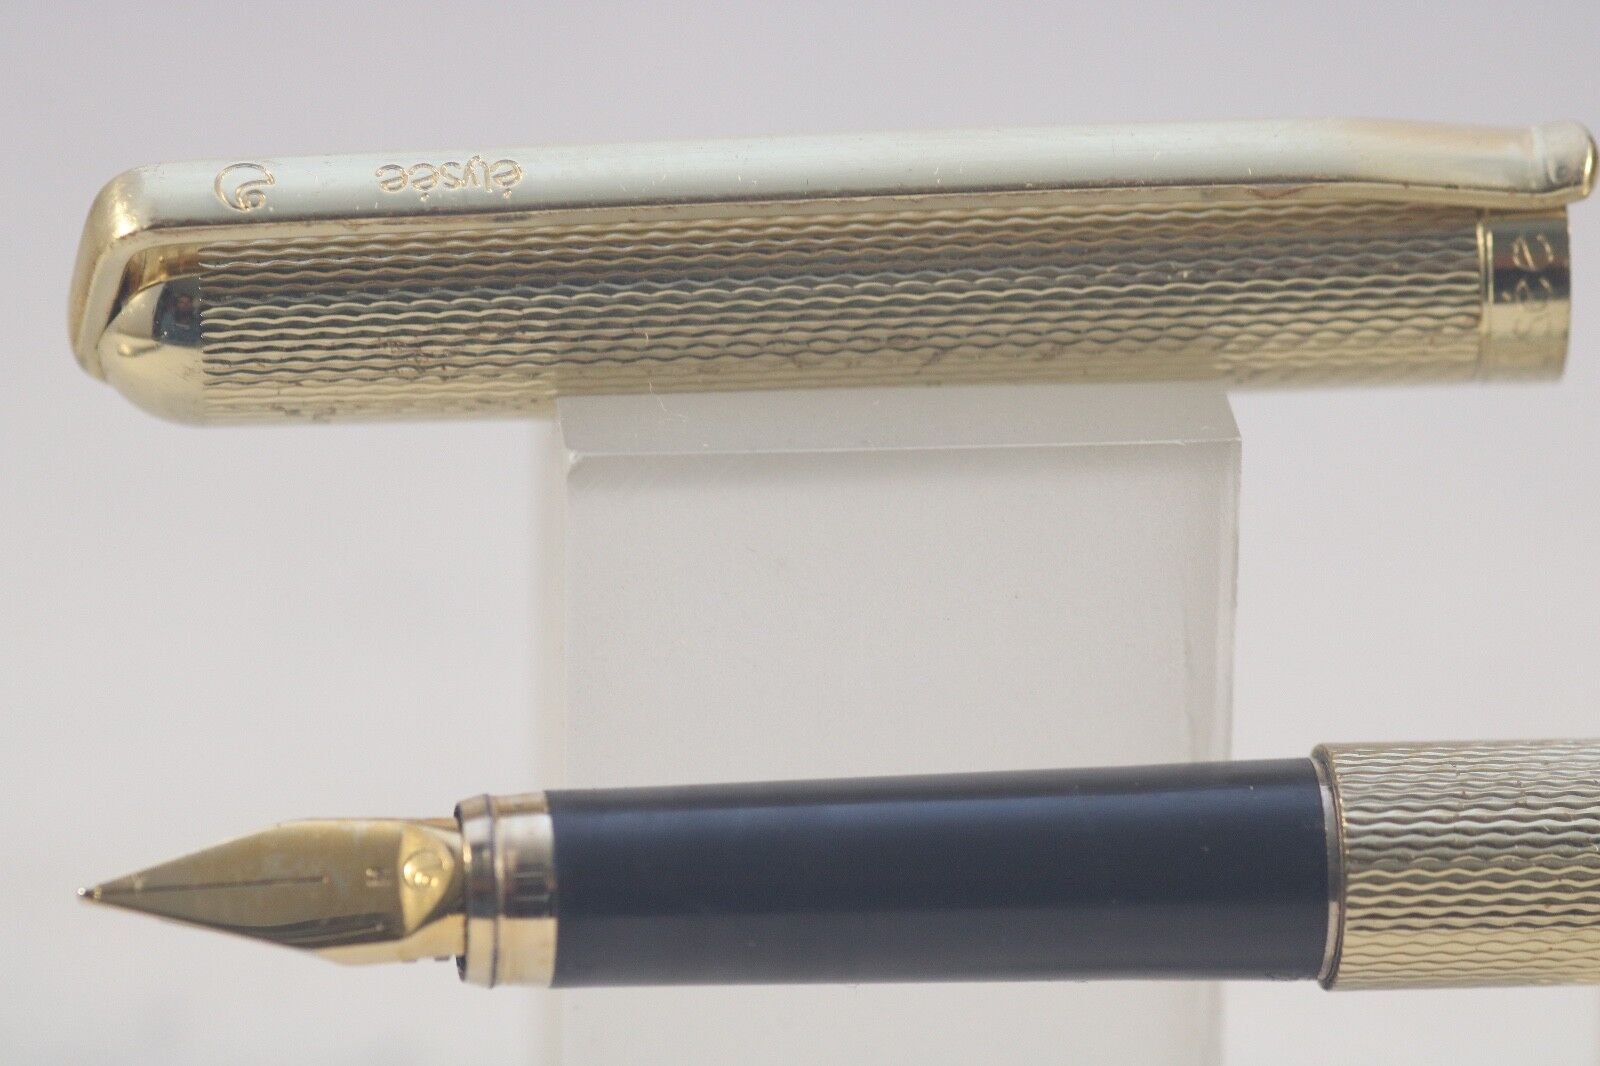 Vintage Elysee Elysee Elysee No. 60 Barleycorn Or Plated Medium Fountain Pen d3efaa